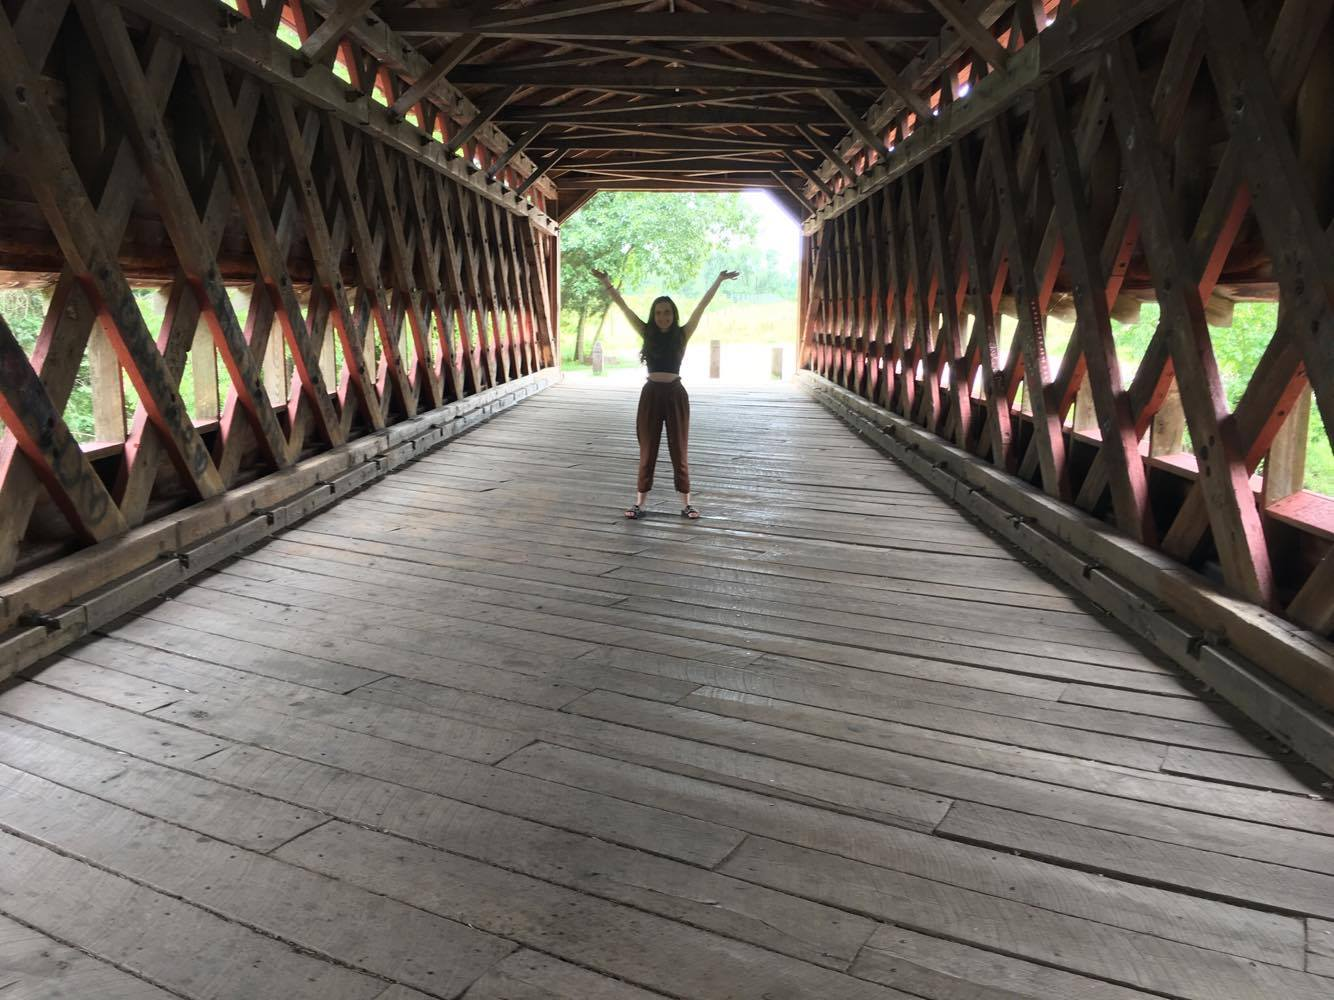 Sachs Covered Bridge: The Most Haunted Bridge in America